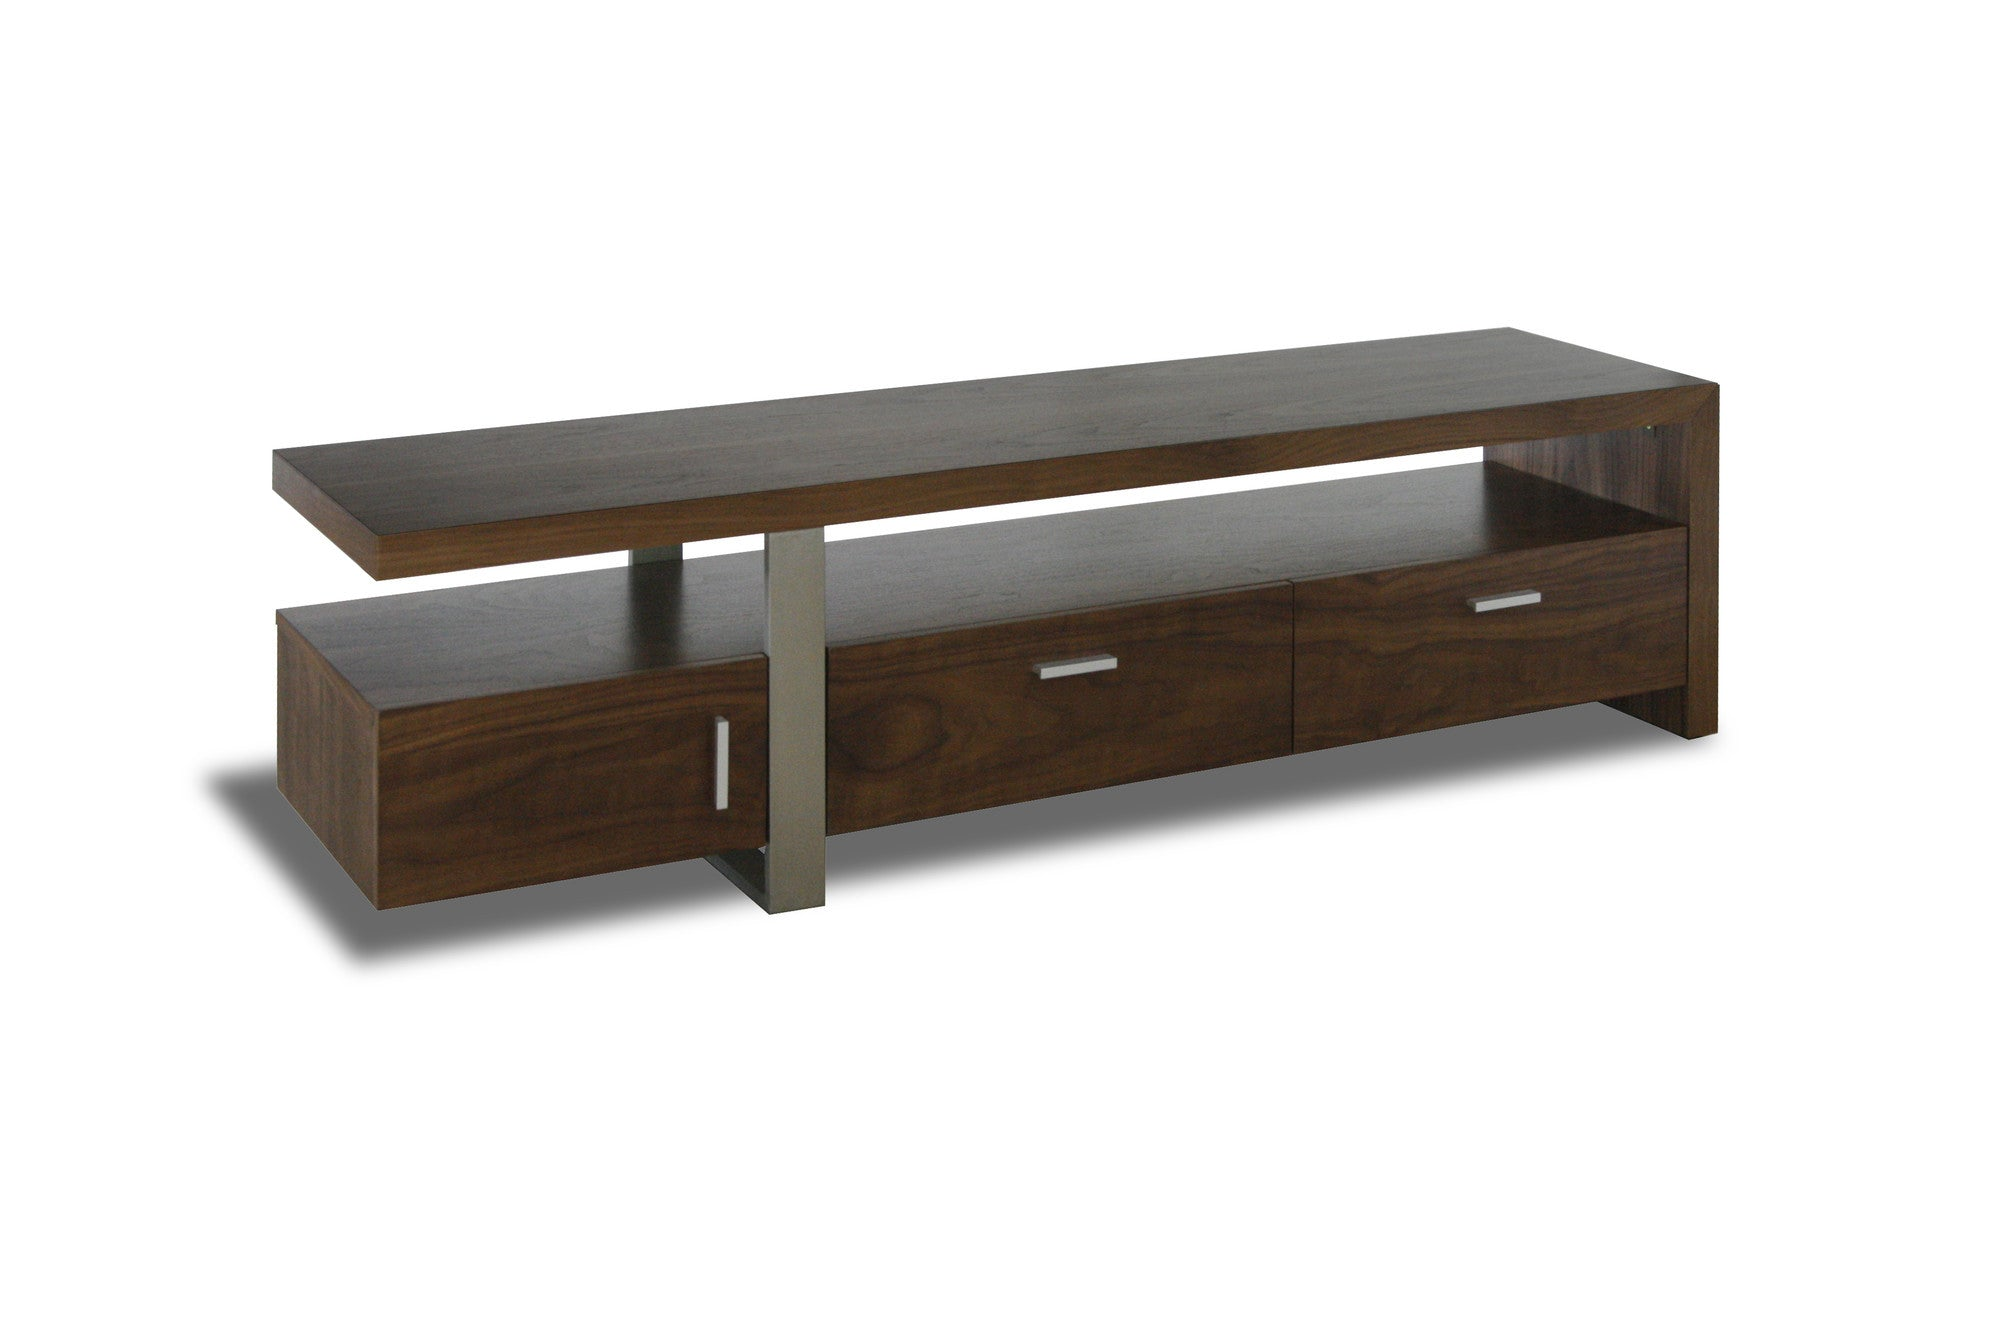 Furniture Reproductions Vancouver I Dining Tables I The Modern